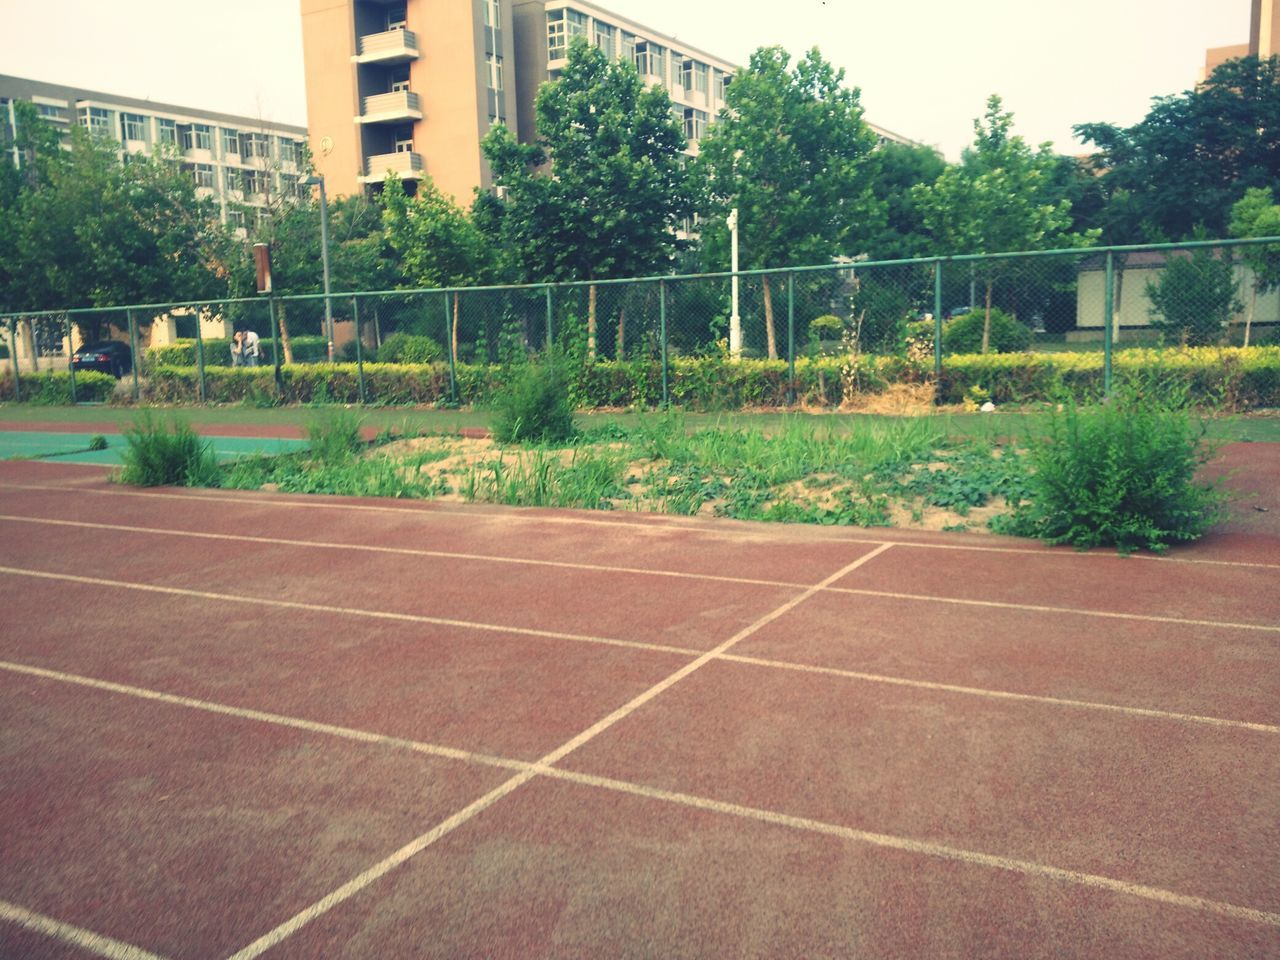 sport, tree, no people, court, challenge, day, outdoors, architecture, sky